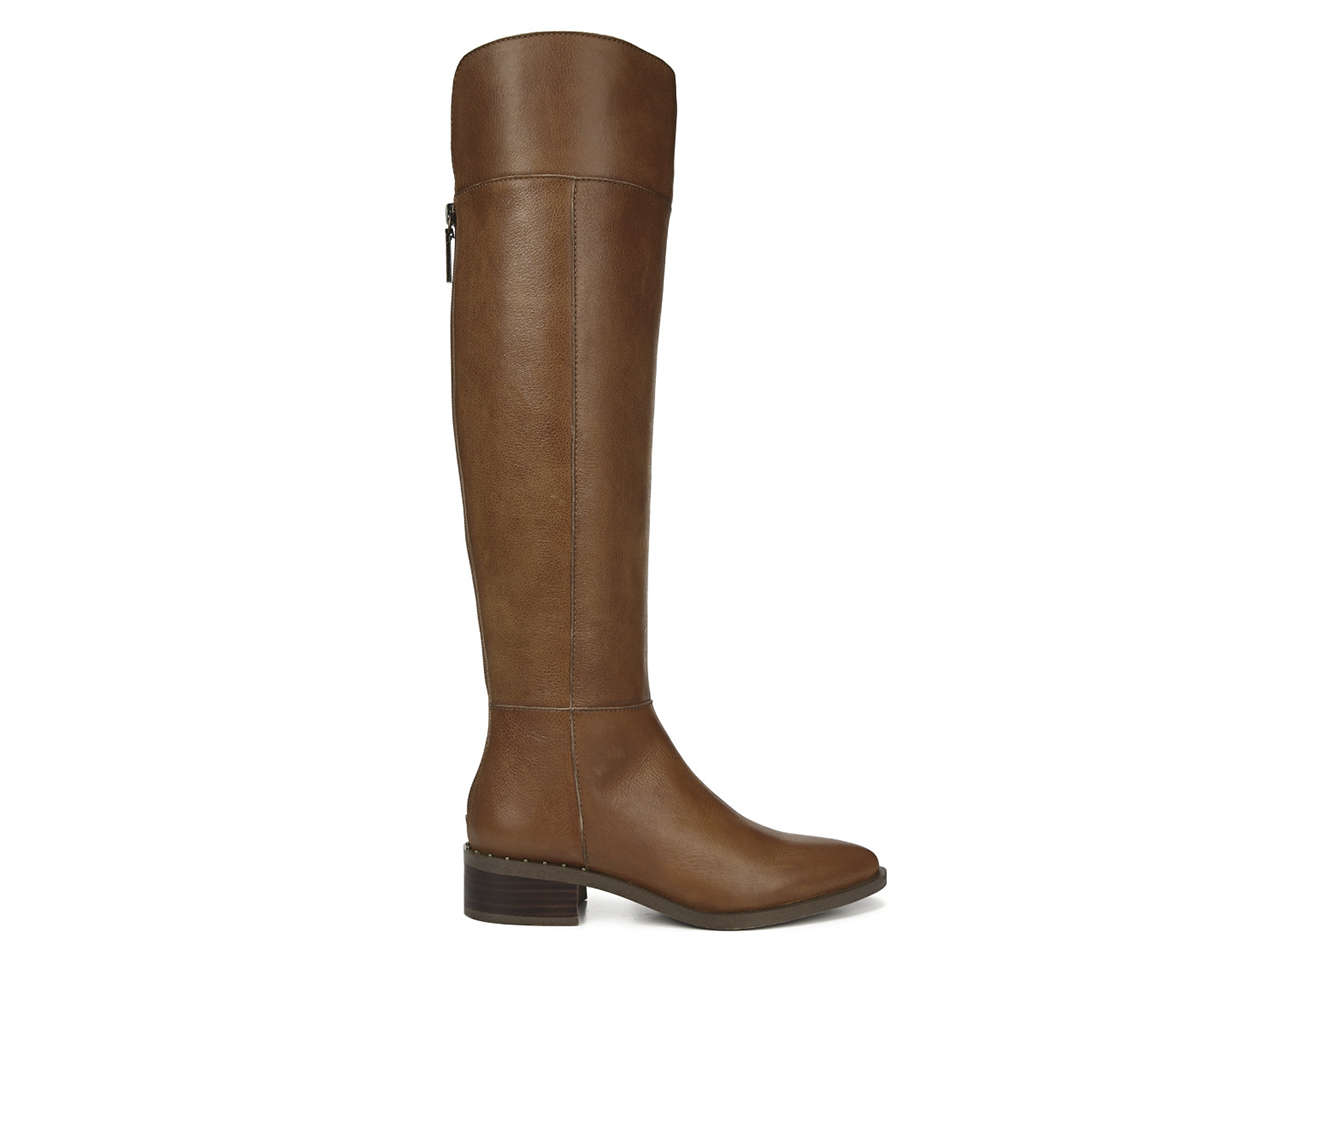 Franco Sarto Daya WC Women's Boots (Brown - Leather)